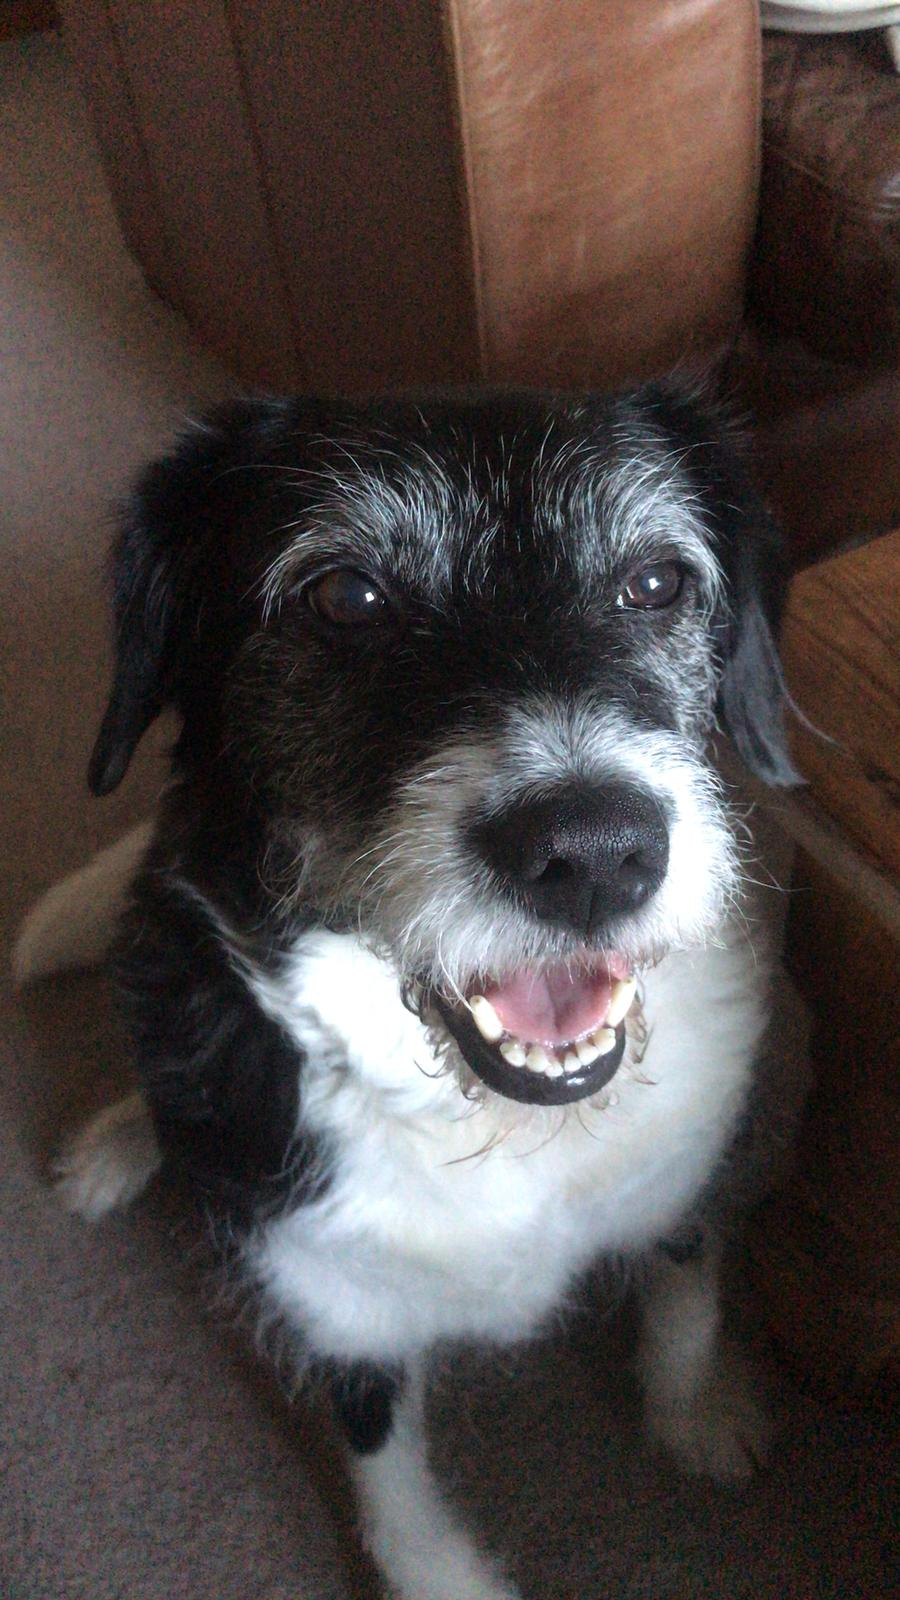 The Benefits of Pet Therapy - By Rachel Mackay